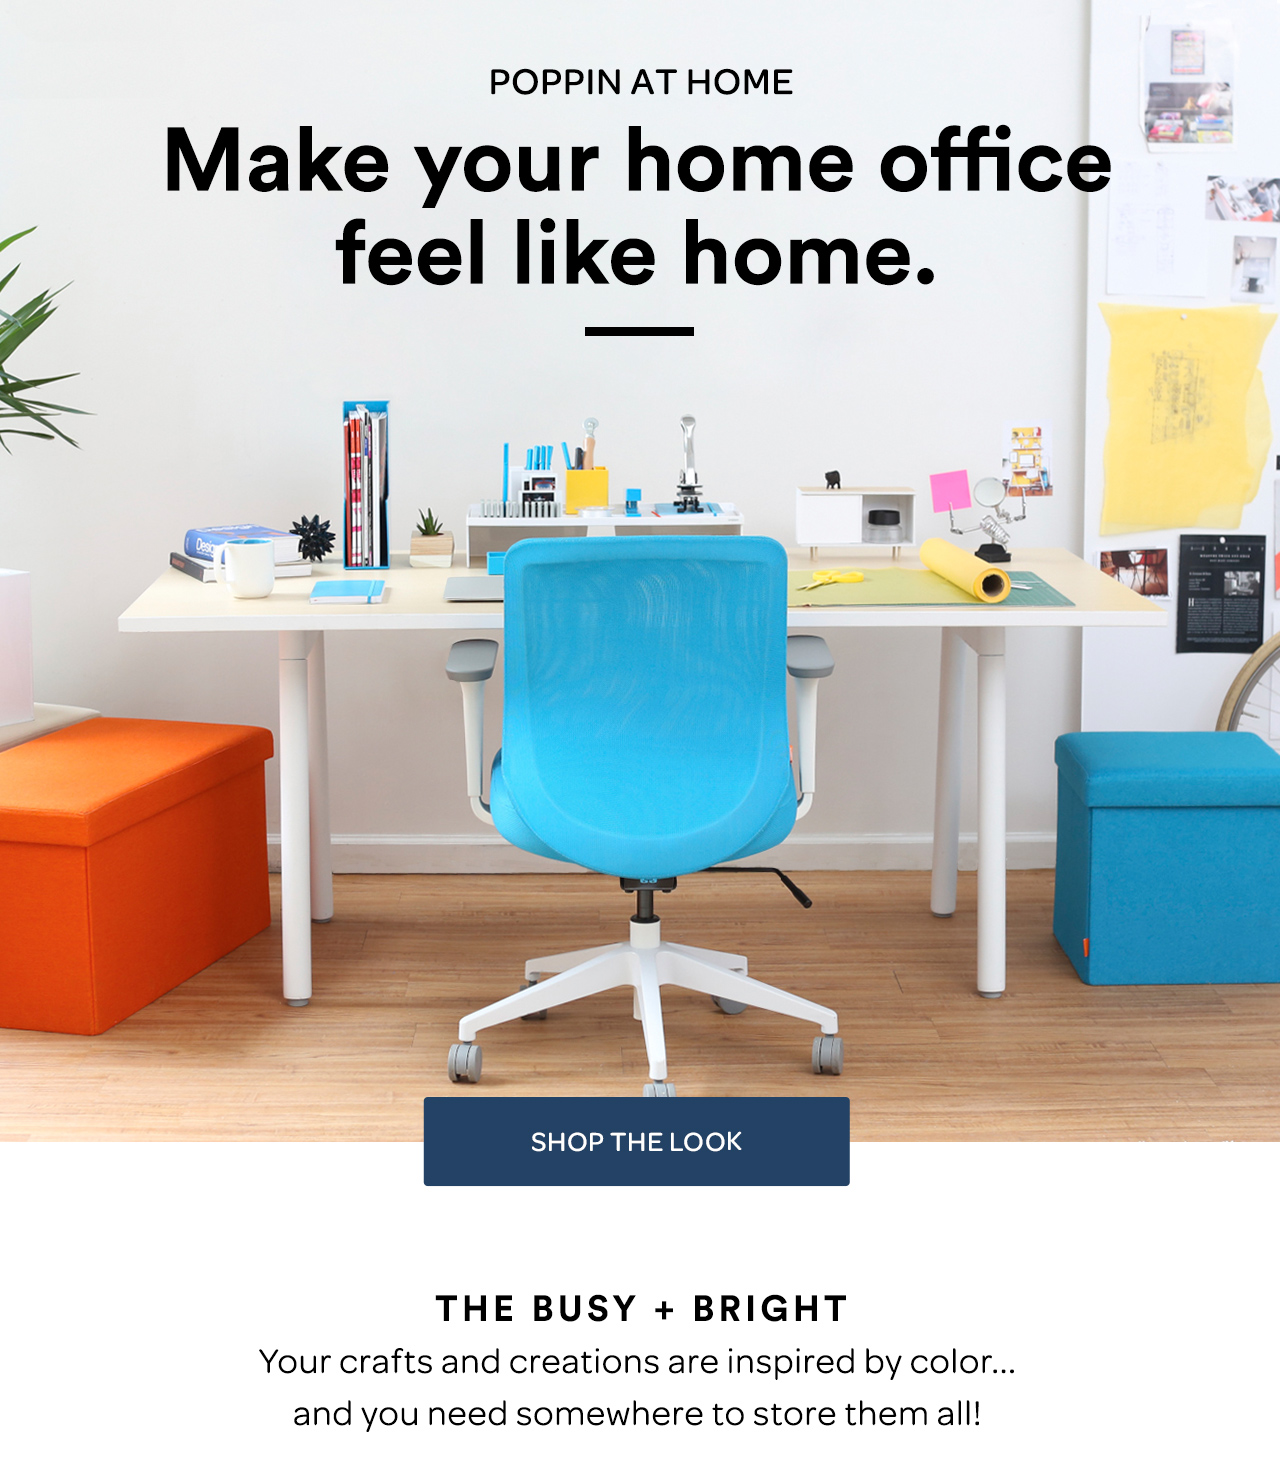 Poppin: Make Your Home Office Feel Like Home.